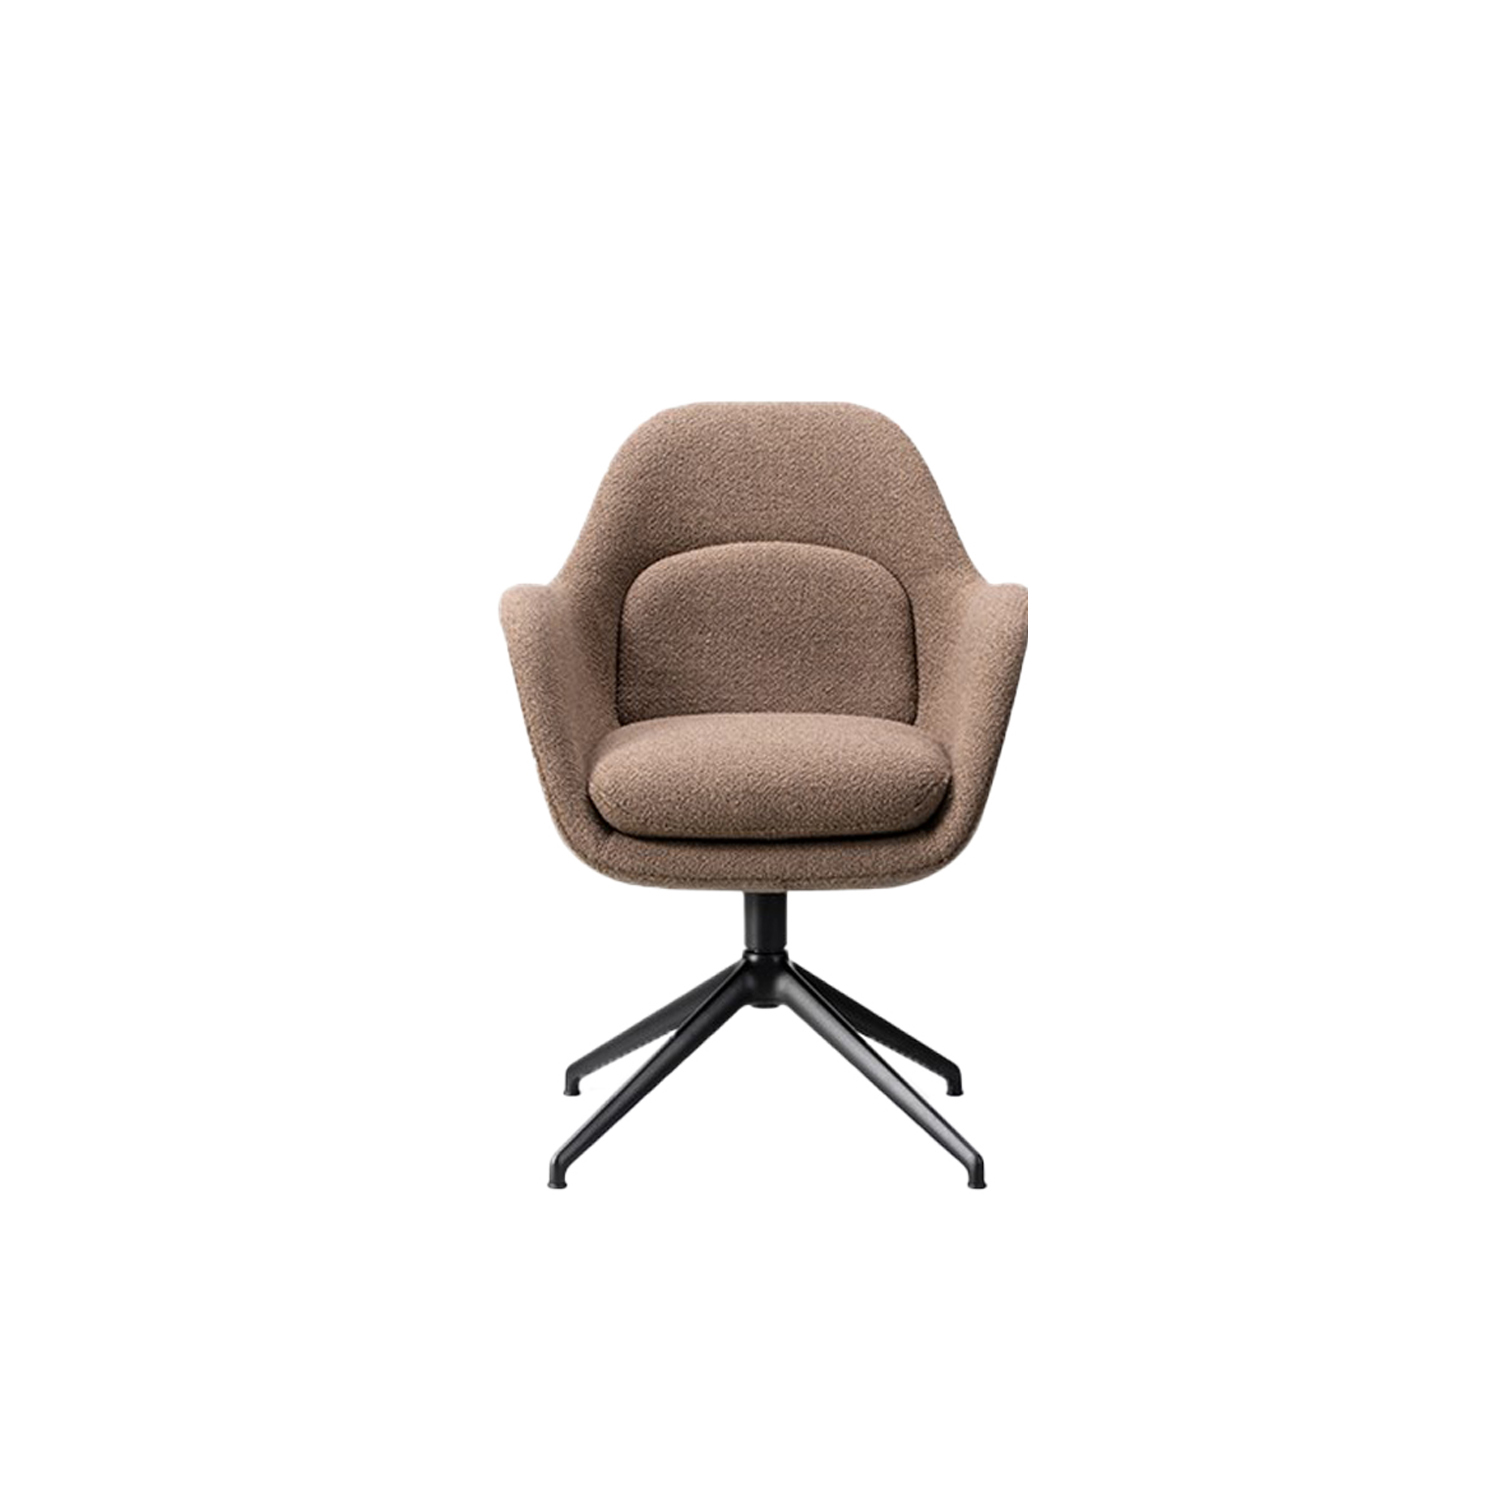 Swoon Chair Swivel Base - The Swoon Chair is the smallest upright version of Swoon. With its singular shell merging the armrests, seat and back, in addition to the supportive, soft cushions and choice of solid wood, you have a subtle, sculptural chair that can easily be personalised for more interiors, such as restaurants, executive offices, meeting rooms and private residences. With its continuous curves, lush look and sculptured shape, Swoon echoes Space Copenhagen's desire for you to enjoy life at a slow pace.   Originally launched for the 11 Howard Hotel in New York, the Swoon Lounge is an open invitation to luxuriate in comfort. Based on their extensive experience designing high-end hotel interiors and Michelin-star restaurants, Space Copenhagen created Swoon to fill a gap missing in the market – a hybrid of a lounge chair and an armchair with the benefits of both. The singular shell merges the back, seat and armrests into one entity, allowing for exceptional support and a fit that feels natural. The seat and back cushions are also attached as one piece for endless hours of comfort.   Swoon is suitable for hotel lobbies, VIP suites, restaurant reception areas, upscale bars, lounges and private residences.   Of course, the perfect companion to any lounge chair is an ottoman. The Swoon Ottoman not only adds to your ability to stretch out and relax even more, it's a decorative element in its own right. Ideal as a pouf for punctuating any space with style.   Look for the same casual take on elegance in the Swoon Lounge Petit. Slightly smaller in size, it features a high back designed at a more upright angle. The result is a chair that invites you to unwind, making it conducive for conversations or working on your laptop. | Matter of Stuff